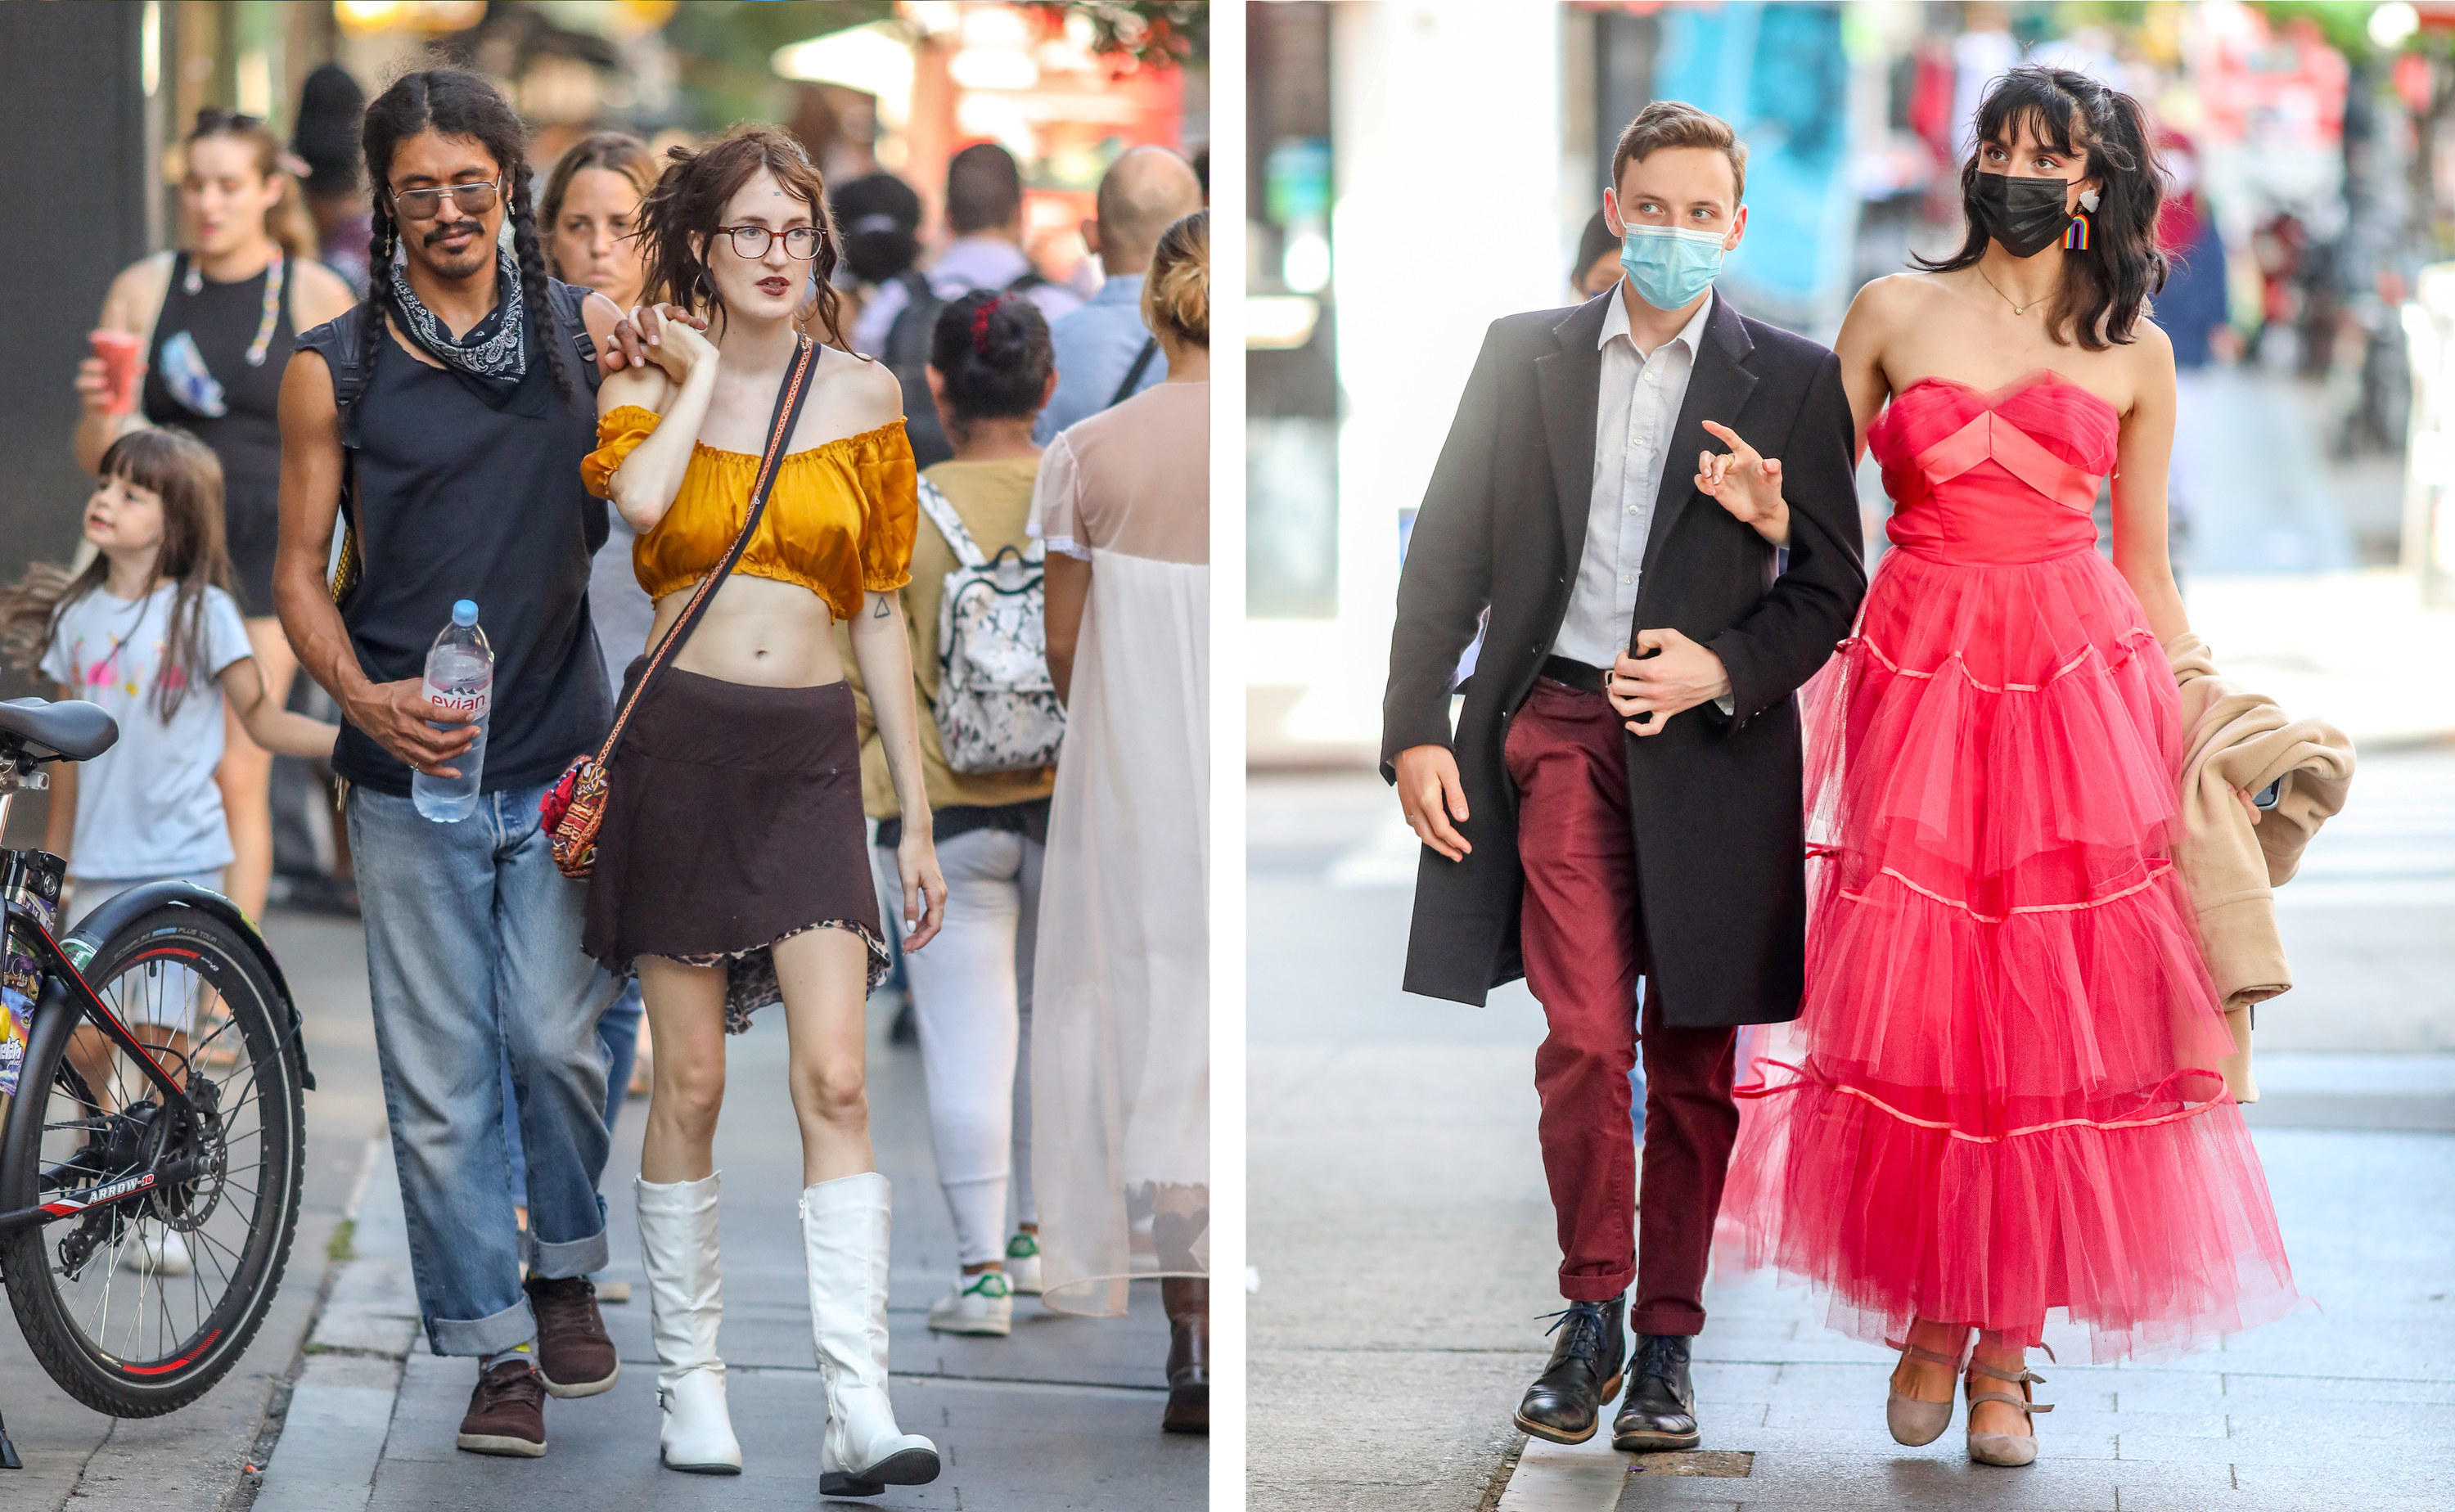 Left, a couple walk down a crowded street, right, a man and a woman in a fancy dress walk down the street